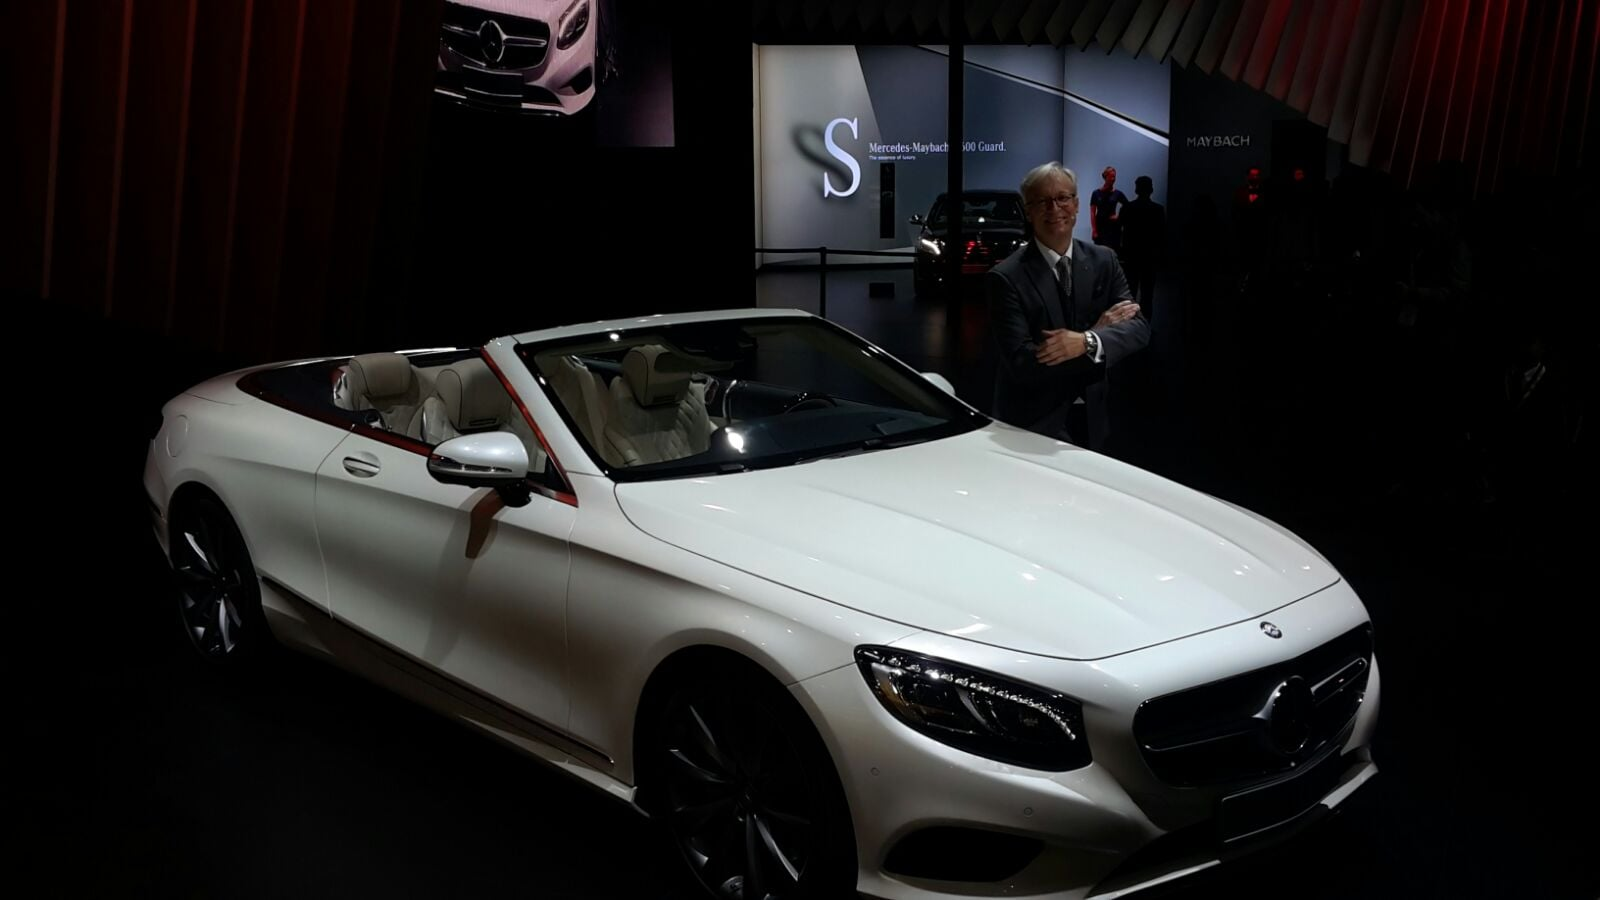 Upcoming New Cars At Auto Expo 2016: Mercedes Cars At Auto Expo 2016, Mercedes Benz At Delhi